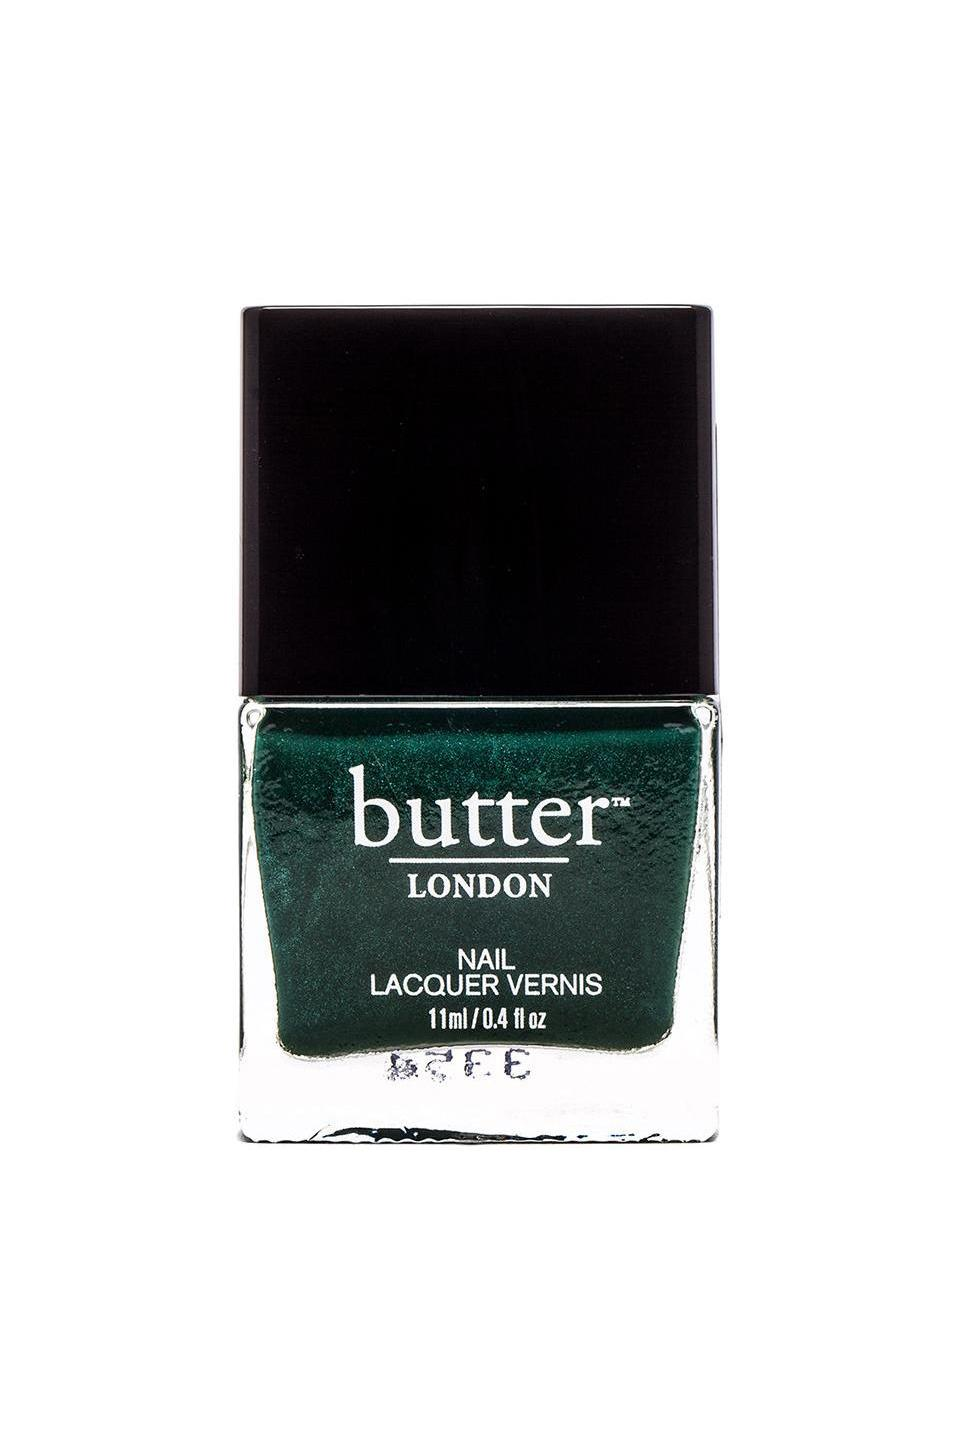 butter LONDON Nail Lacquer in British Racing Green